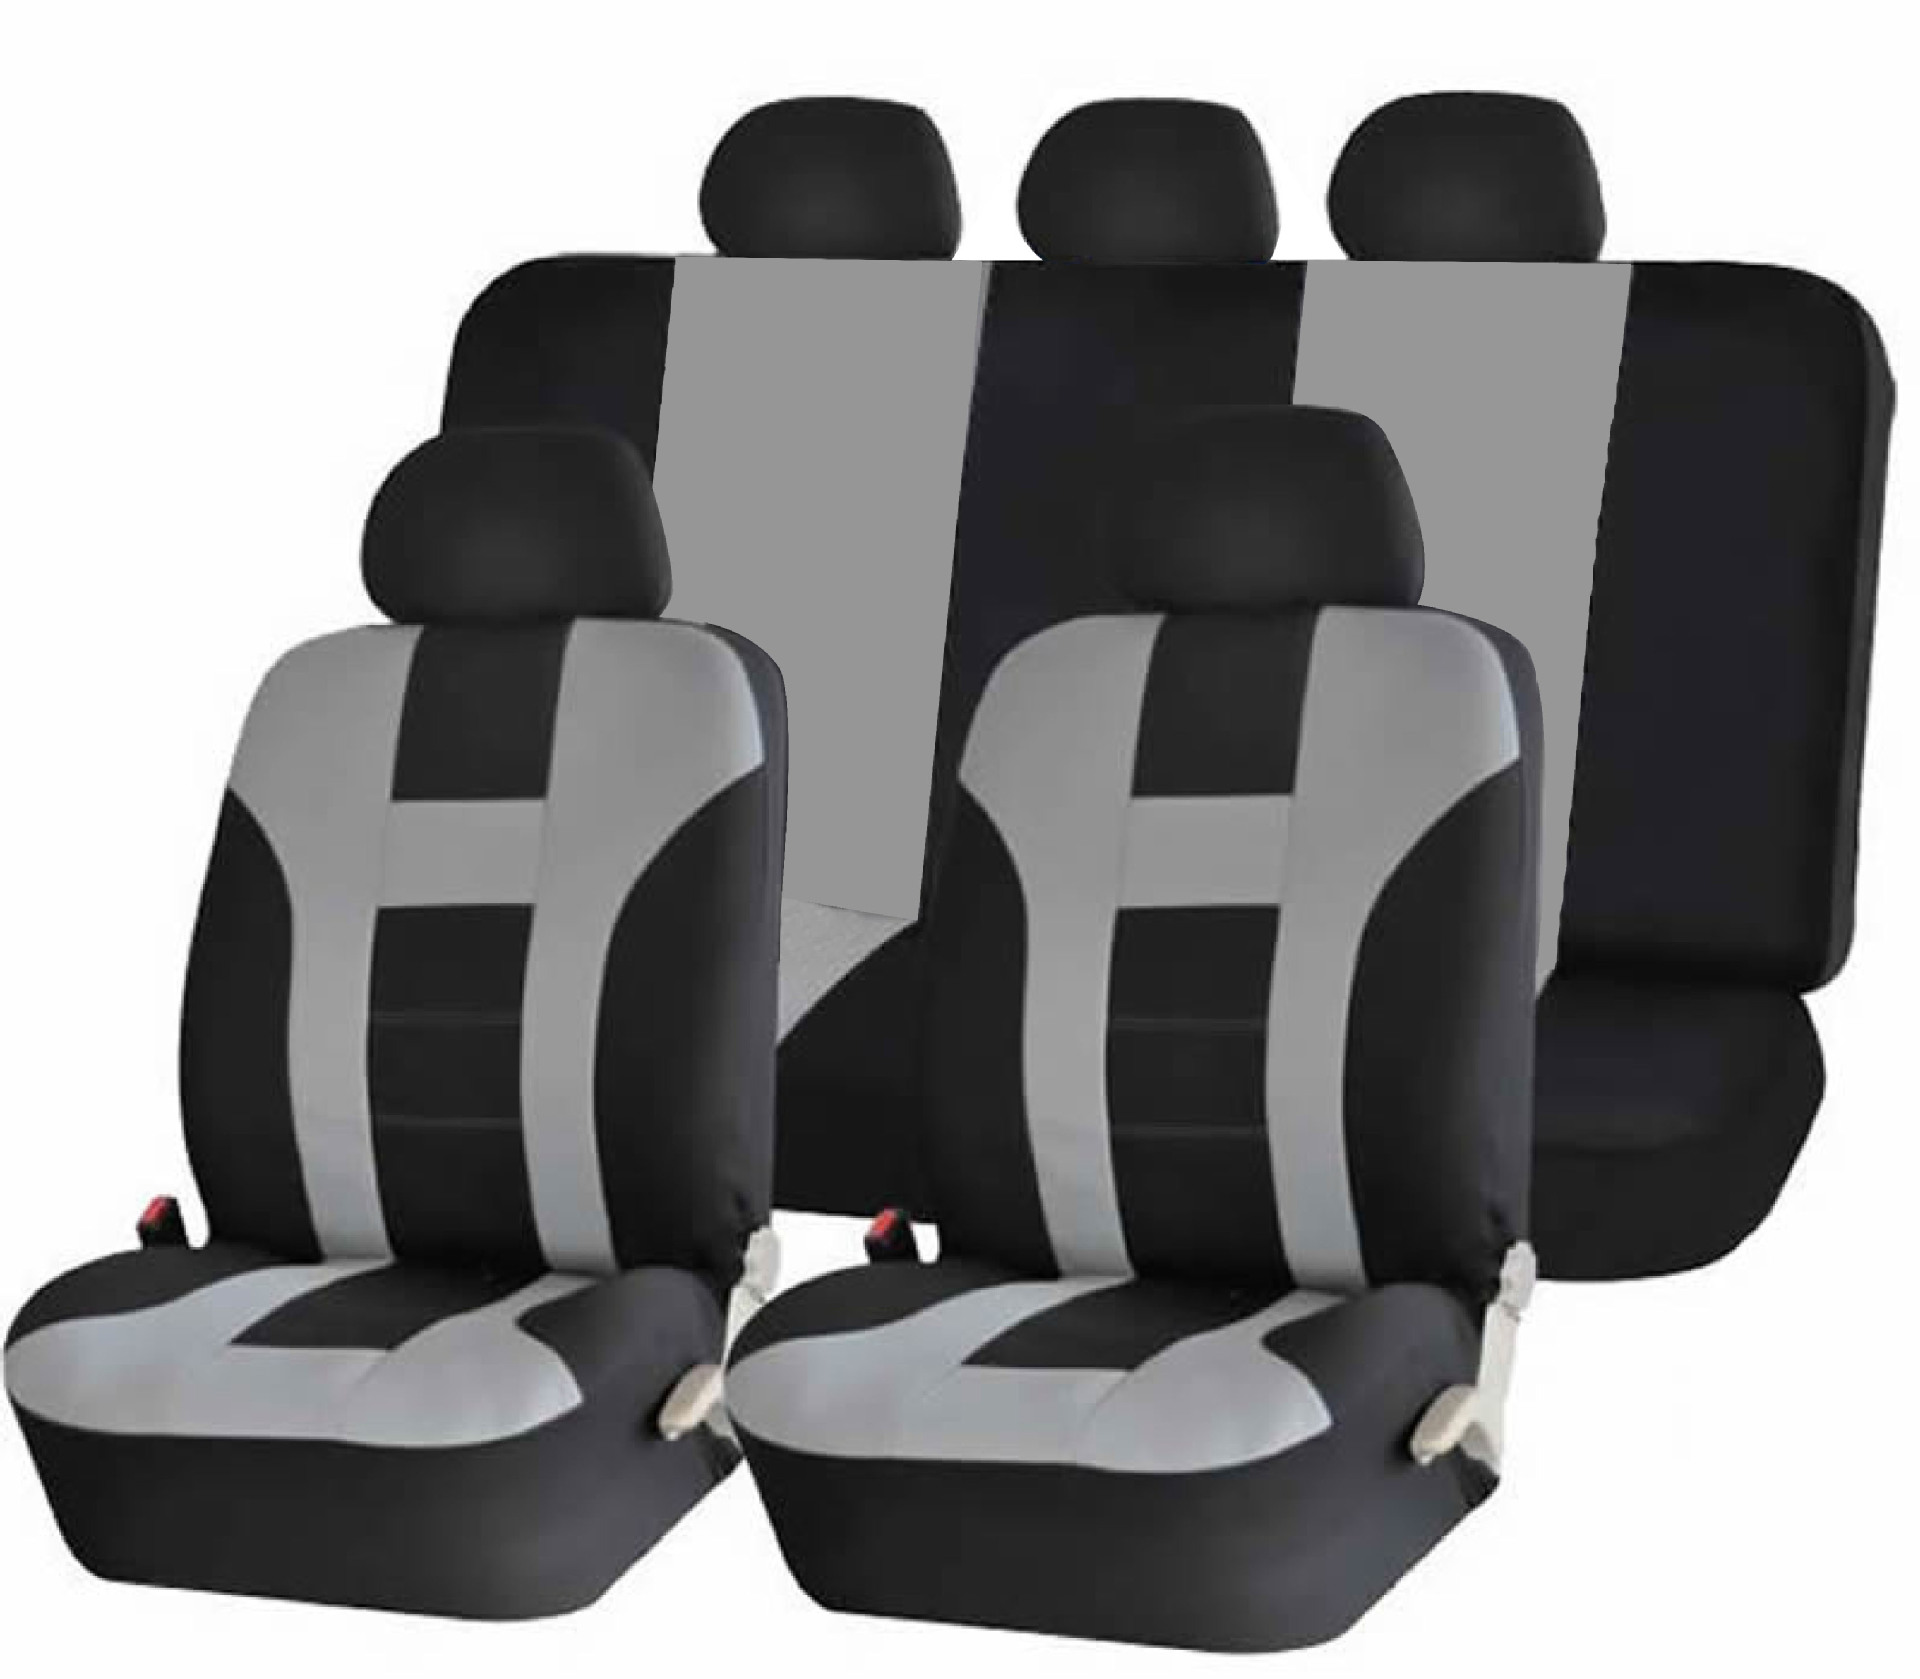 9pcs/4pcs Universal Classic Car Seat Cover Car Fashion Style Seat Cover Black + gray 9 pcs/ set